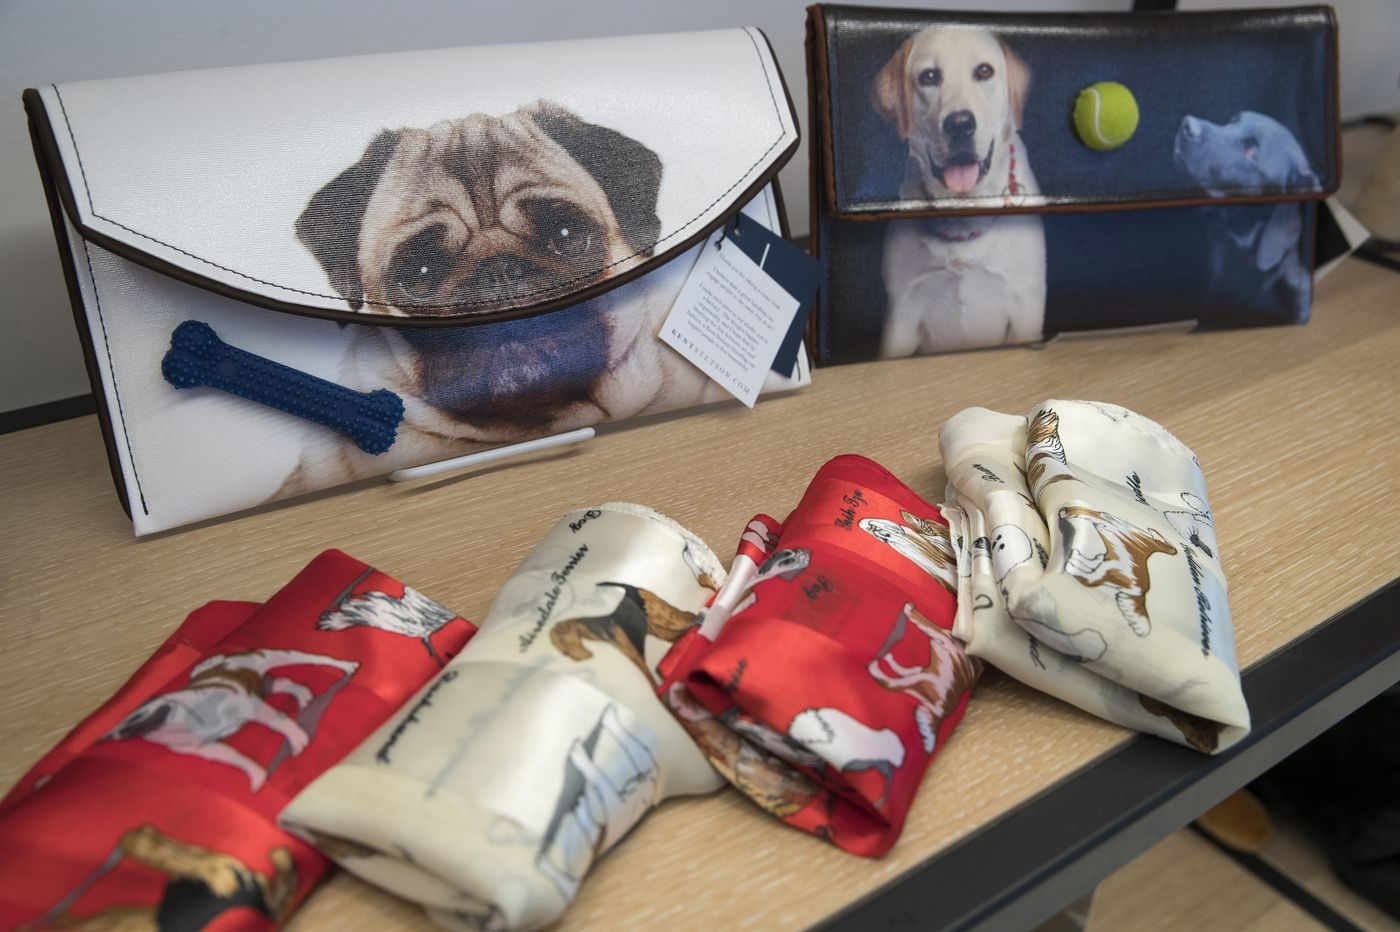 The Museum of the Dog is unleashed in Manhattan